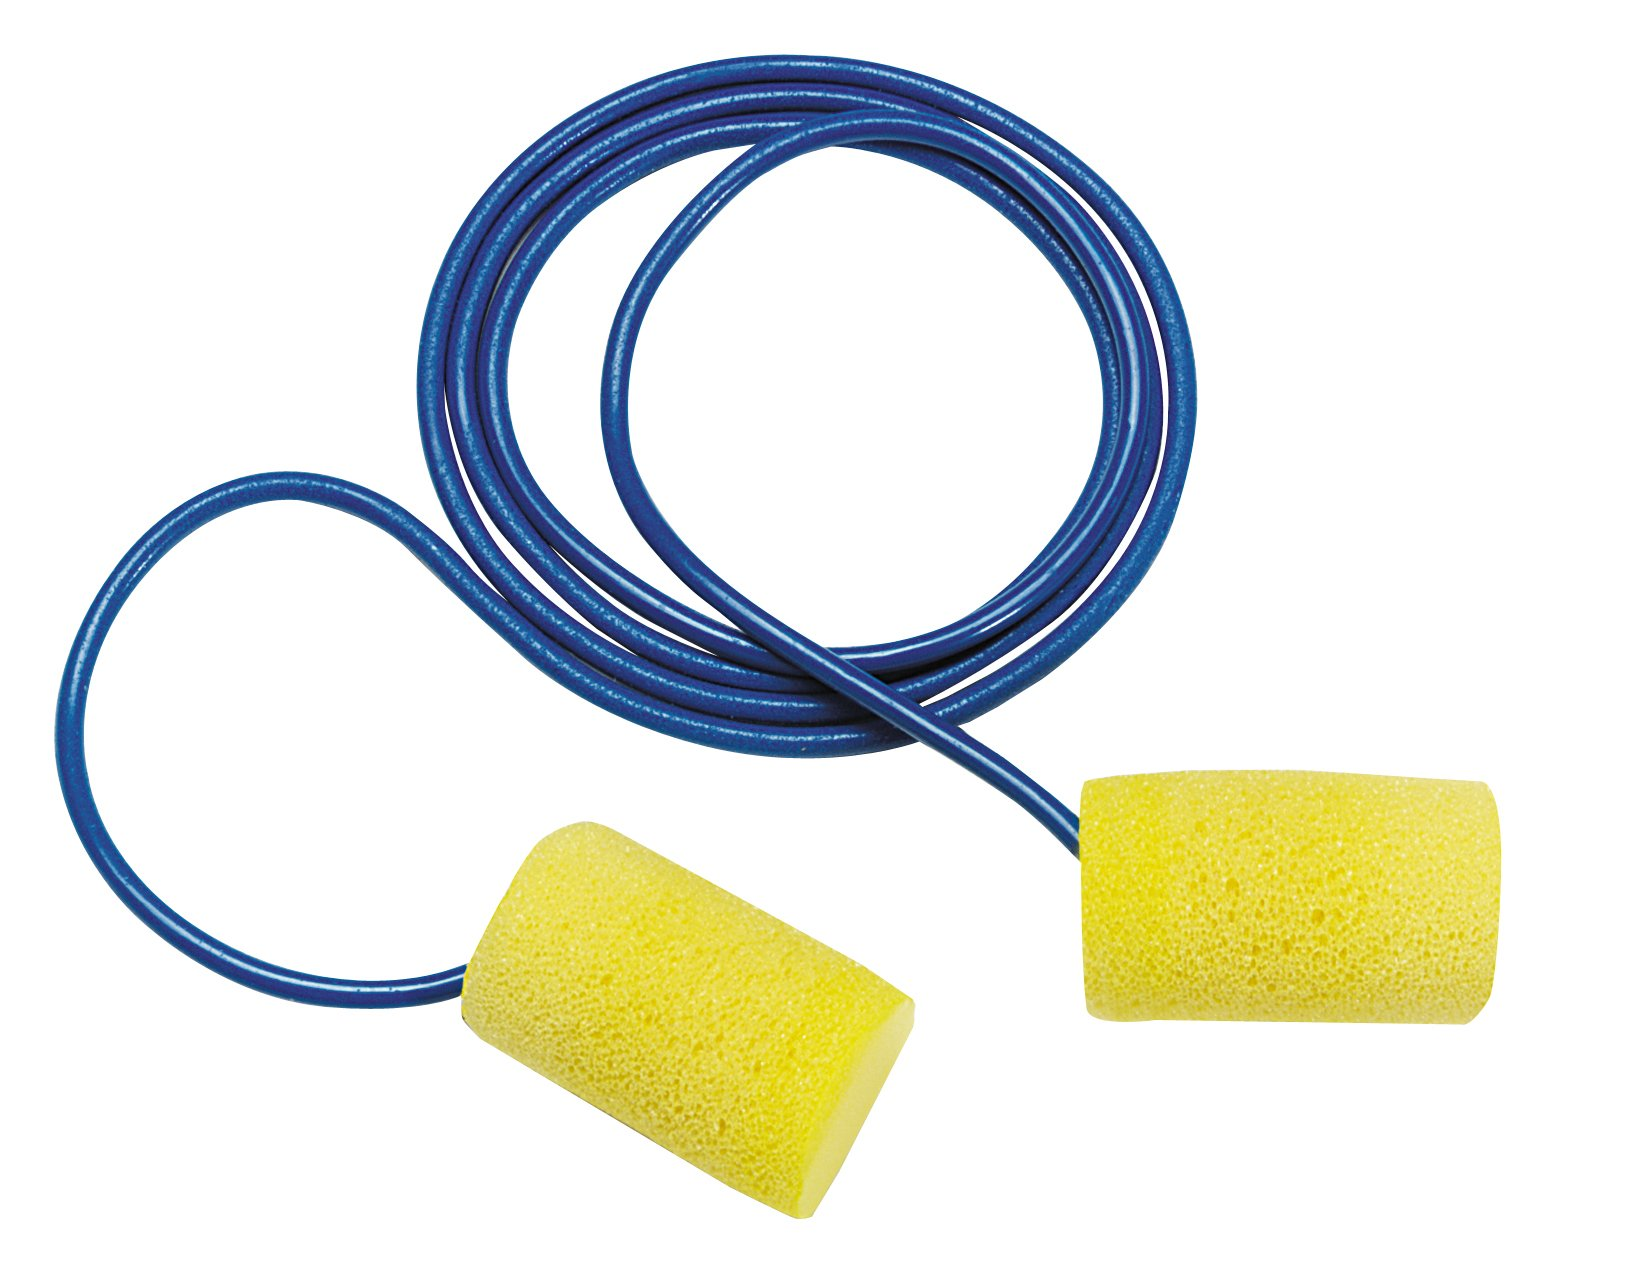 3M E-A-R Classic Corded Earplugs 310-1080, in Poly Bag by 3M Personal Protective Equipment